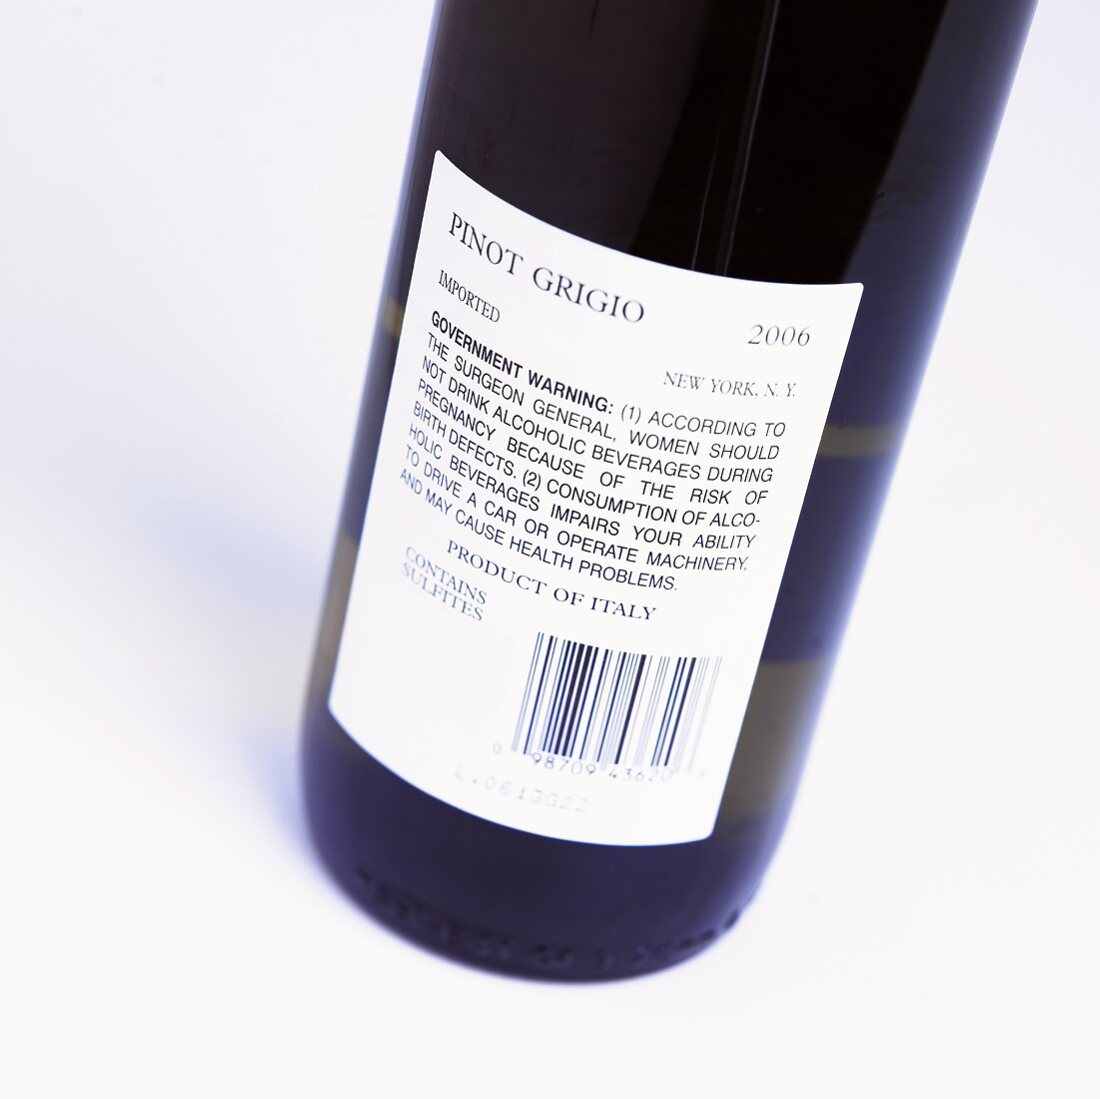 Close Up of Wine Label on Bottle; Pinot Grigio